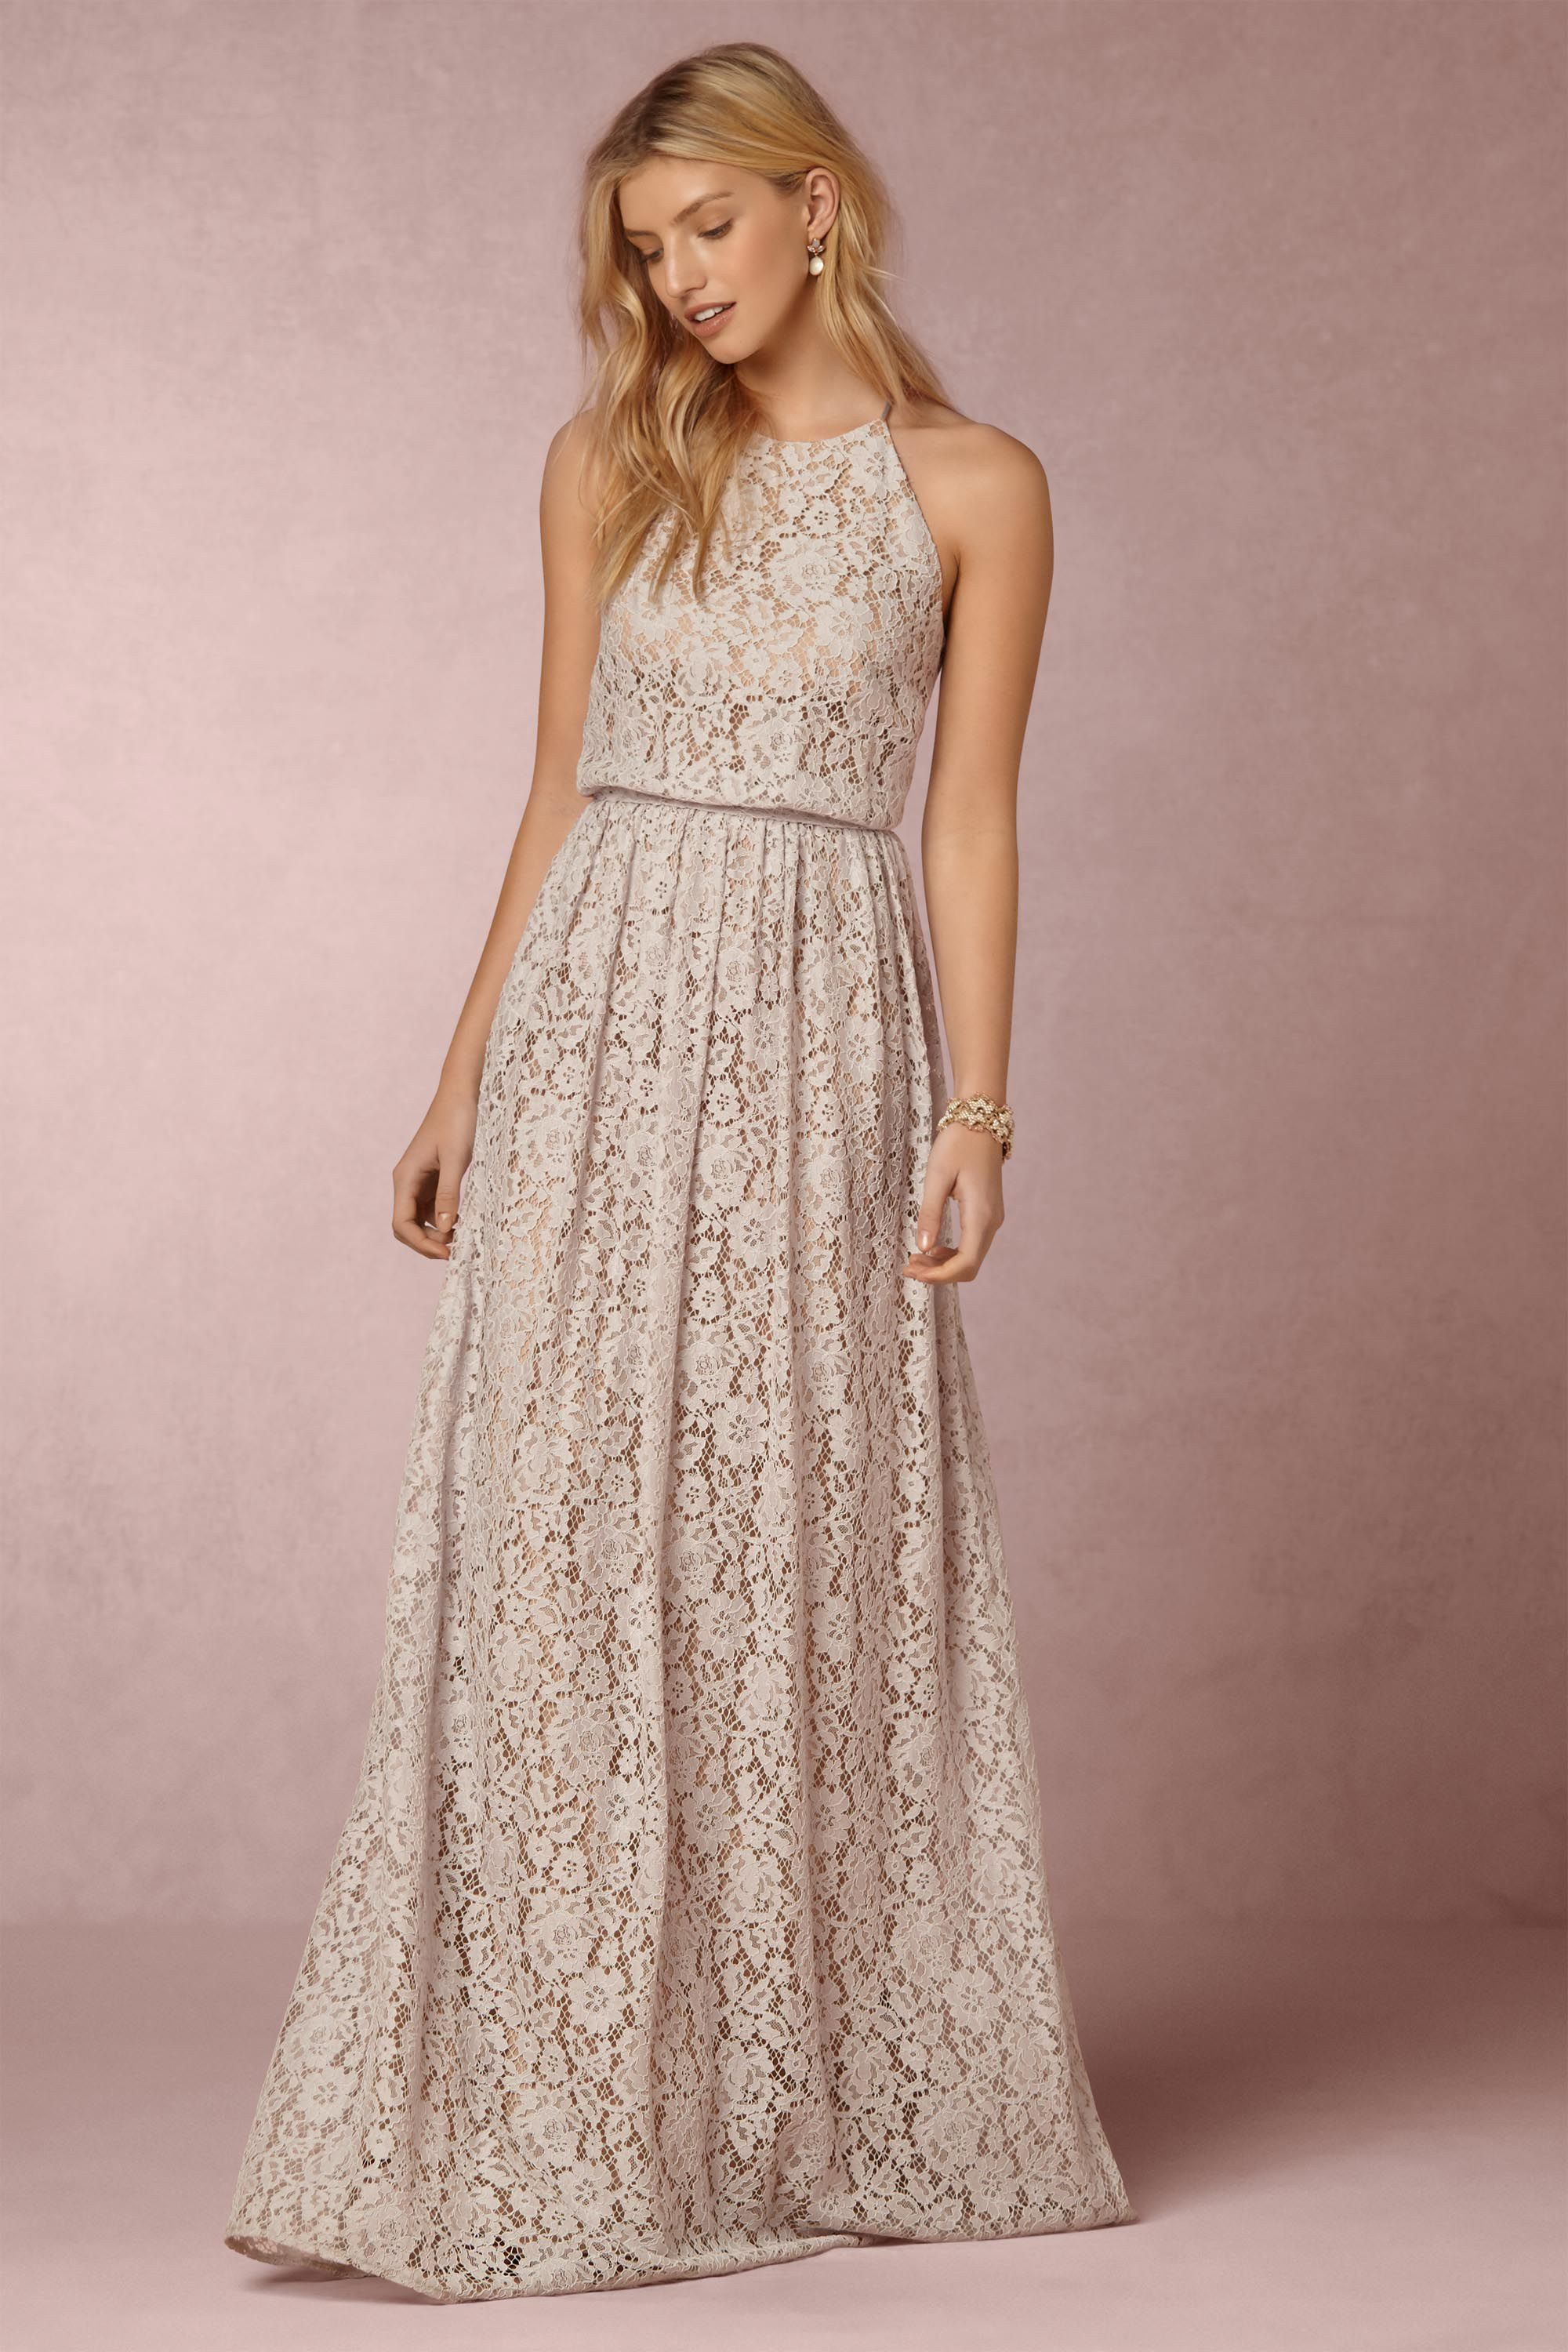 Bhldn alana dress in platinum nude 28000 specific bridesmaid bhldn alana dress in bridesmaids view all dresses at bhldn this for a maid of honor dress but with the tie in the front ombrellifo Image collections